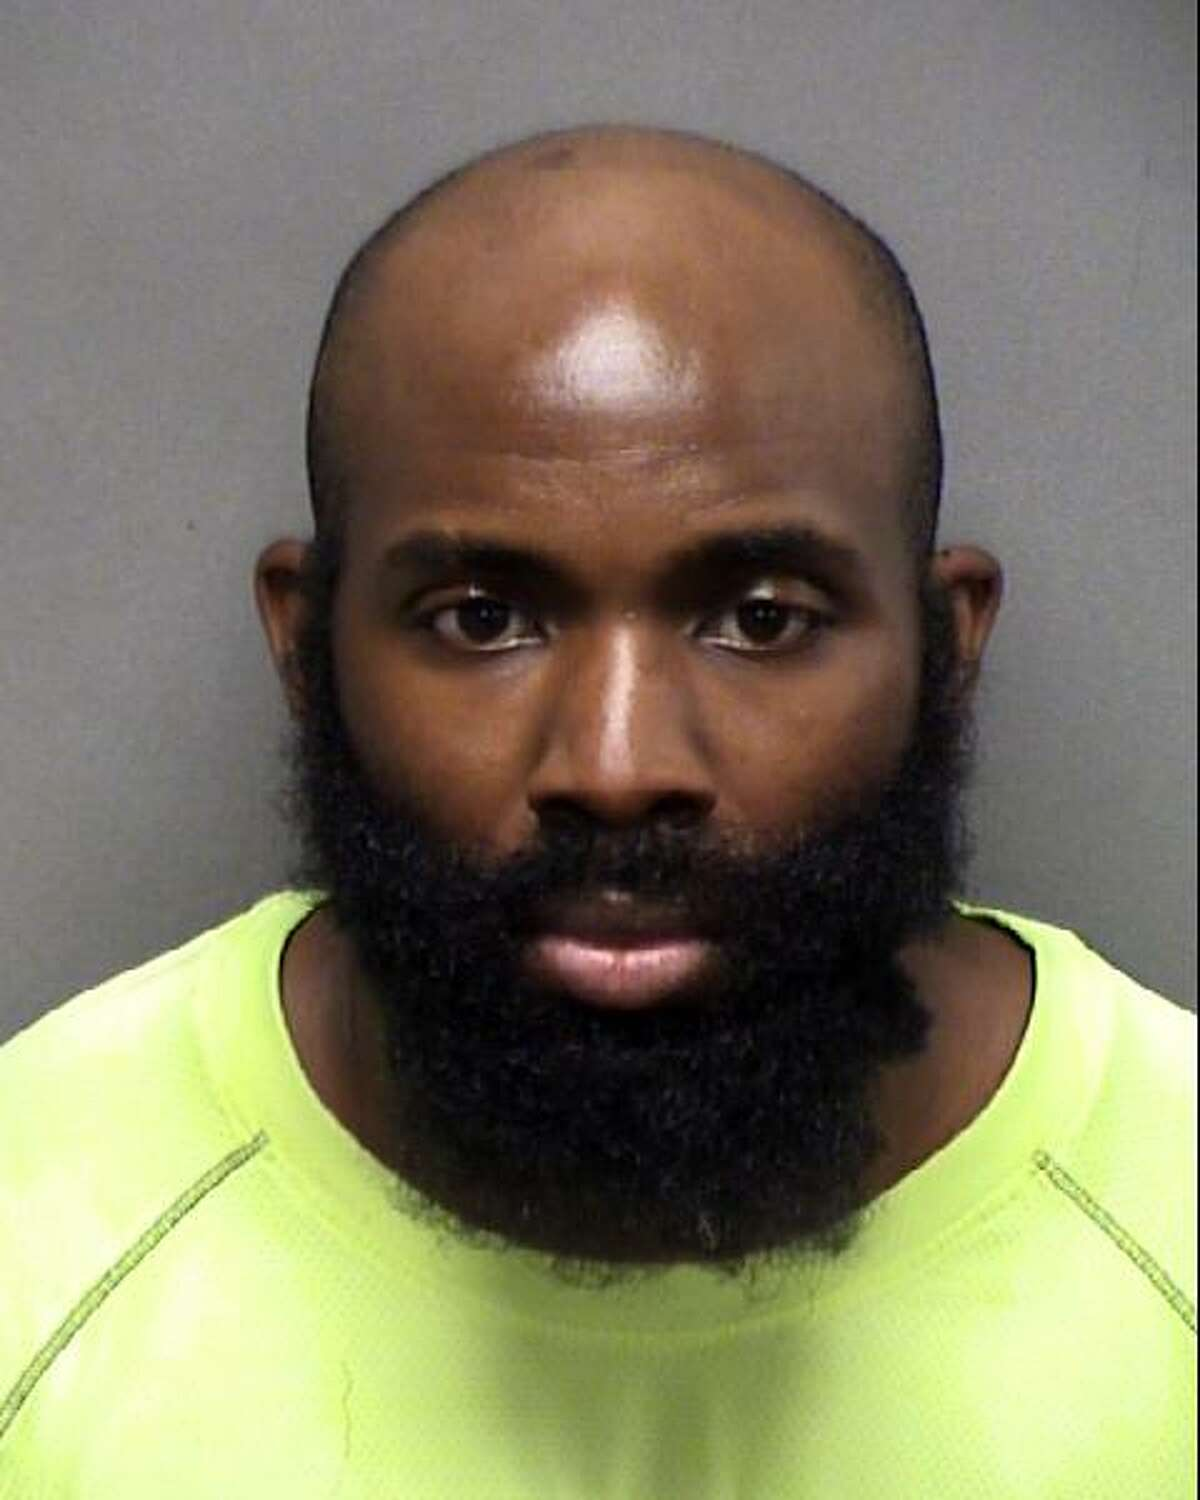 Mathias Ometu, 33, an insurance adjuster, was arrested on two counts of assaulting a police officer.